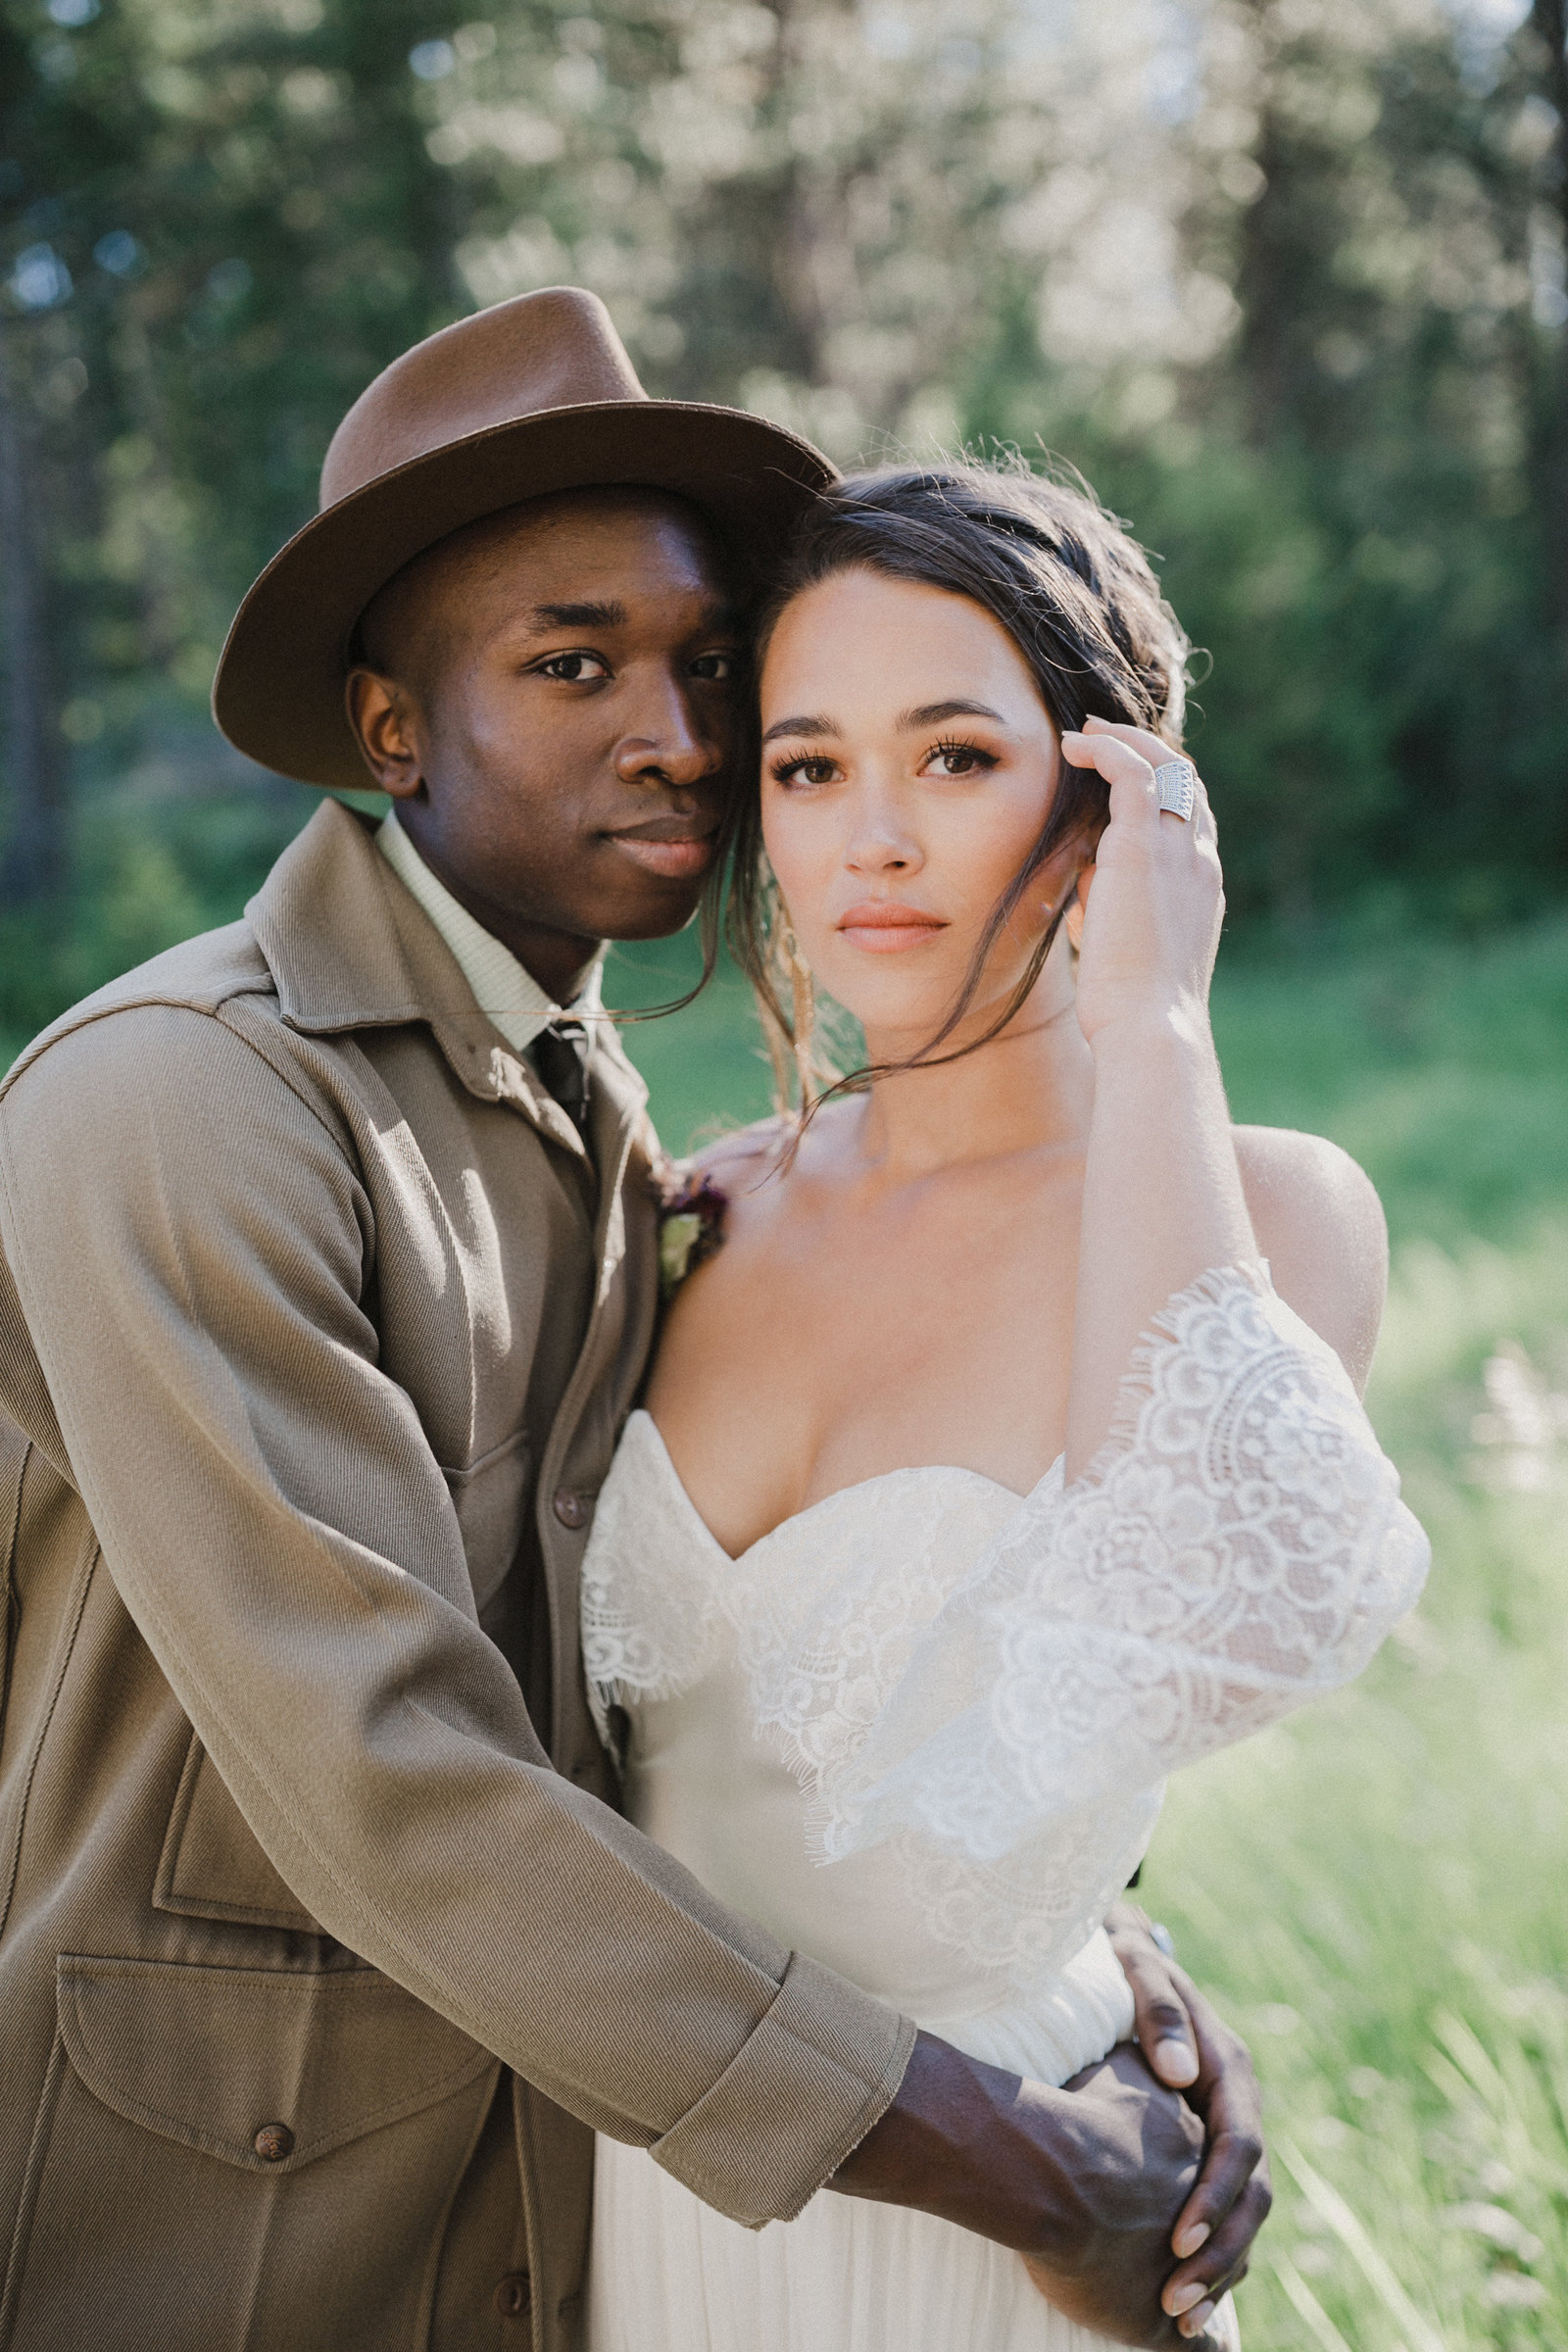 Adventurous styled wedding shoot in Missoula, Montana.